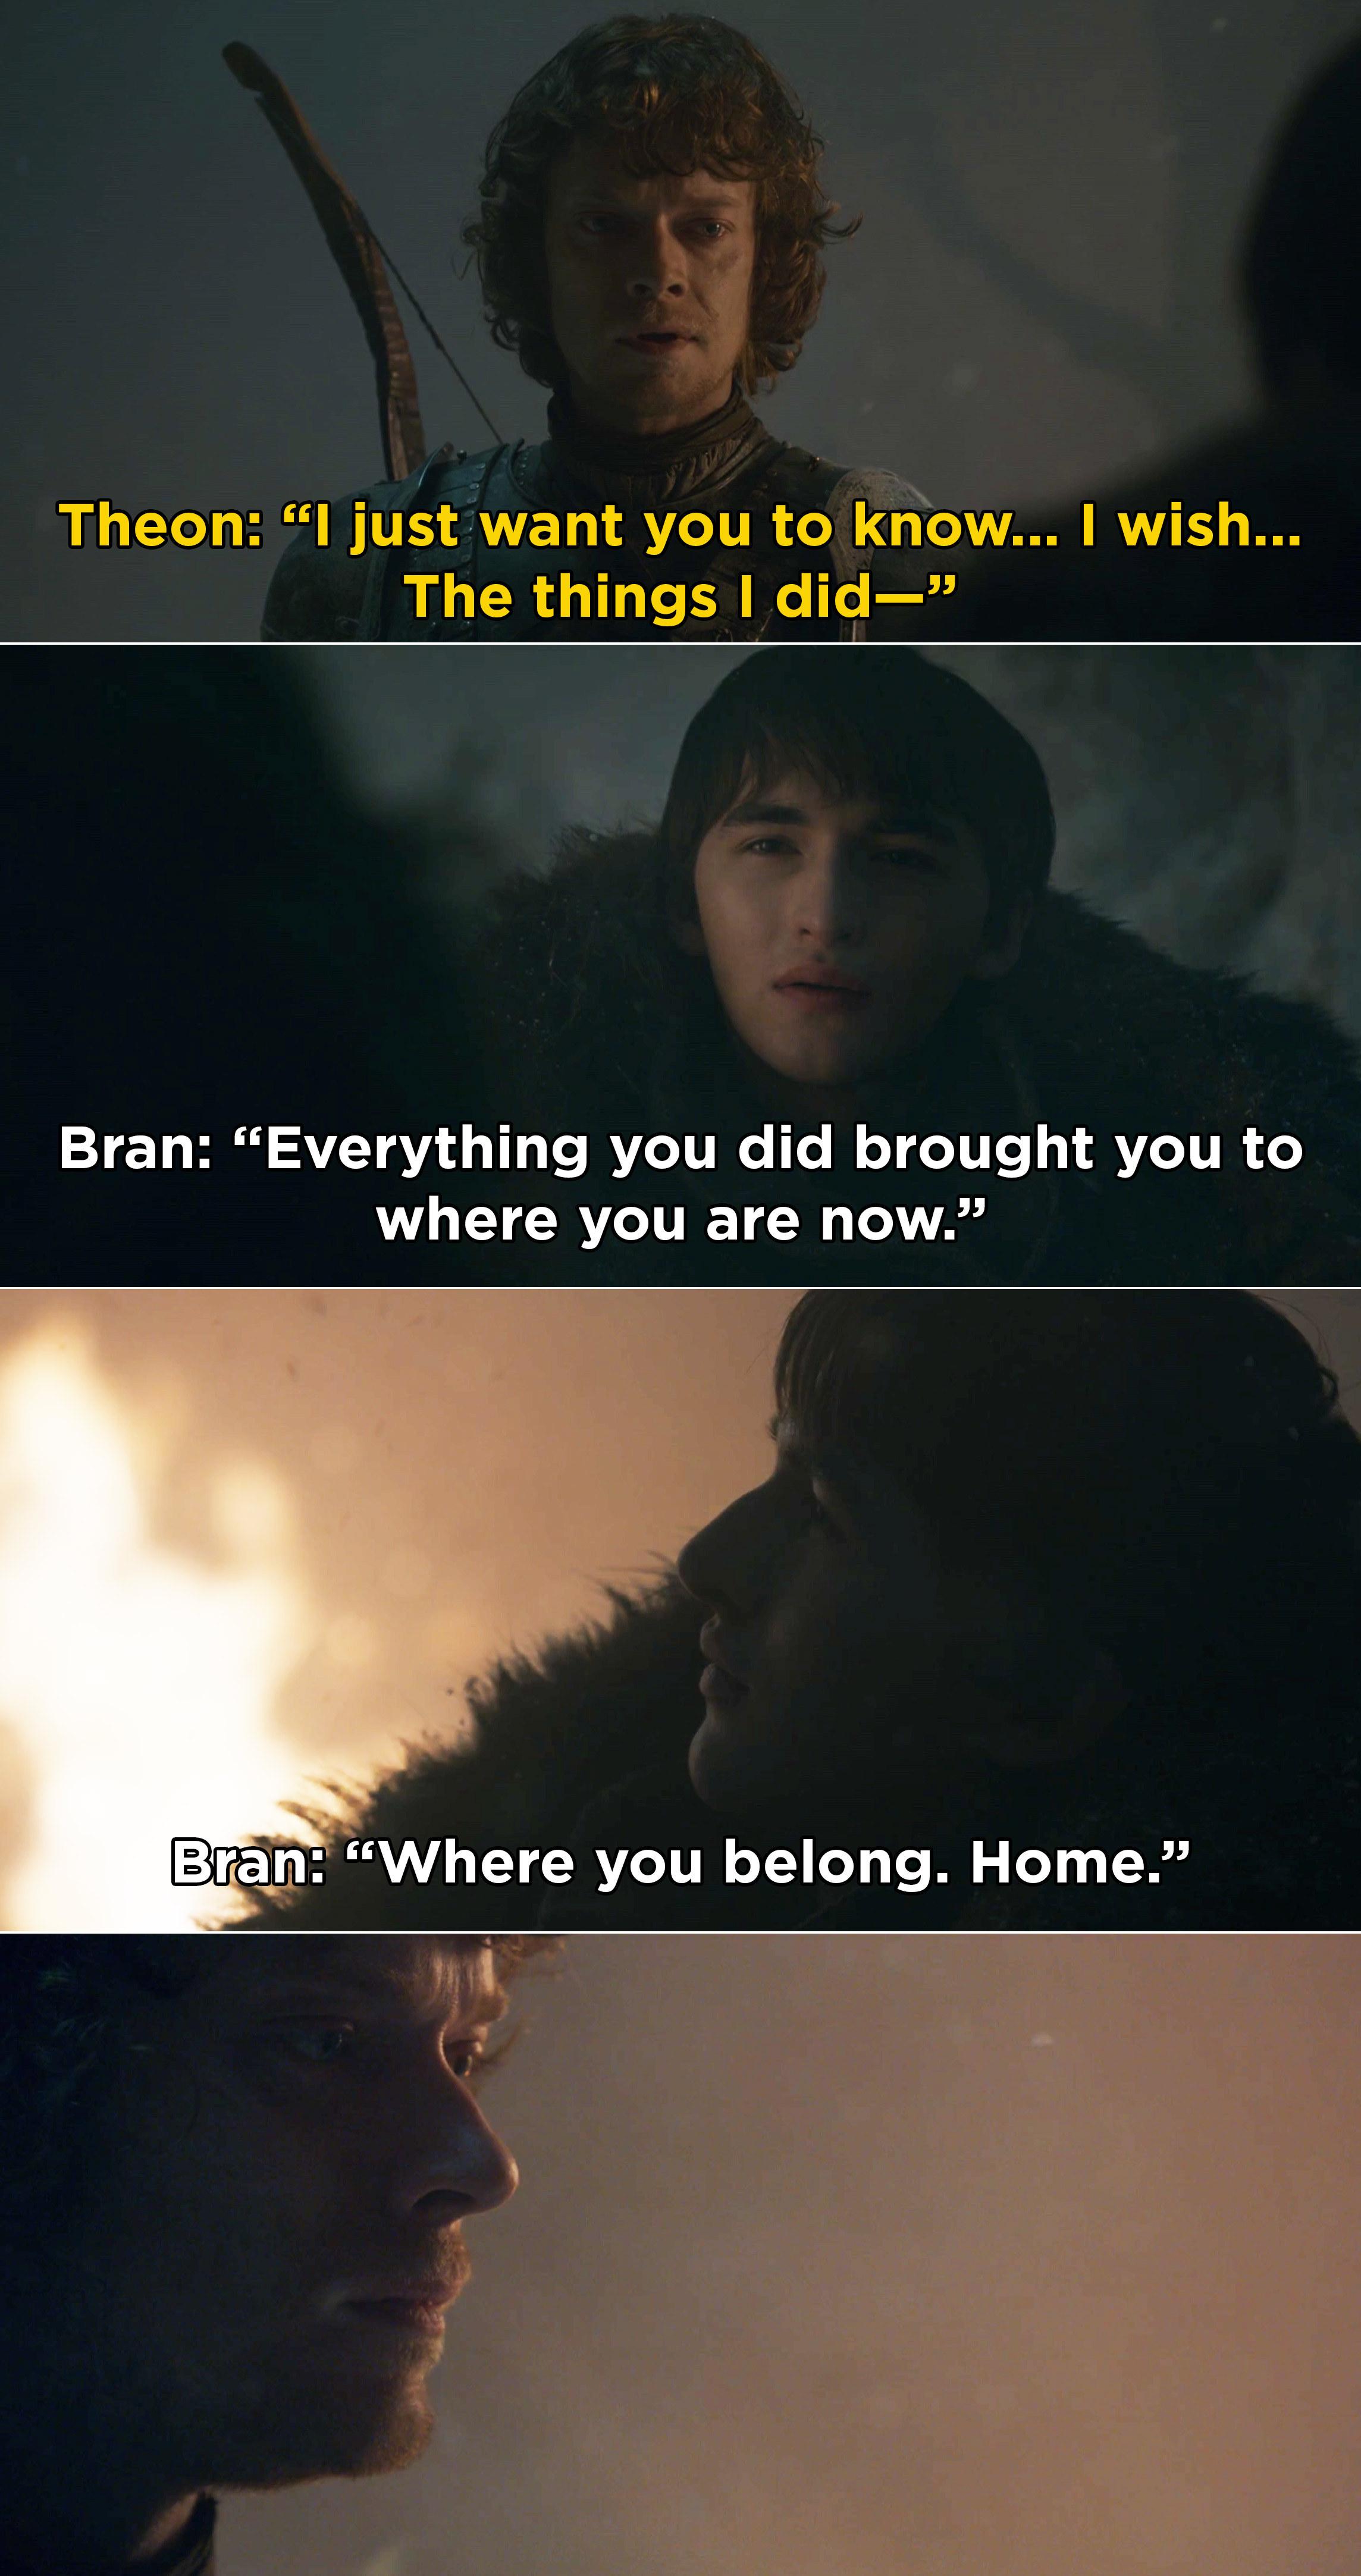 """Theon talking to Bran, and Bran telling him, """"Everything you did brought you to where you are now. Where you belong. Home"""""""